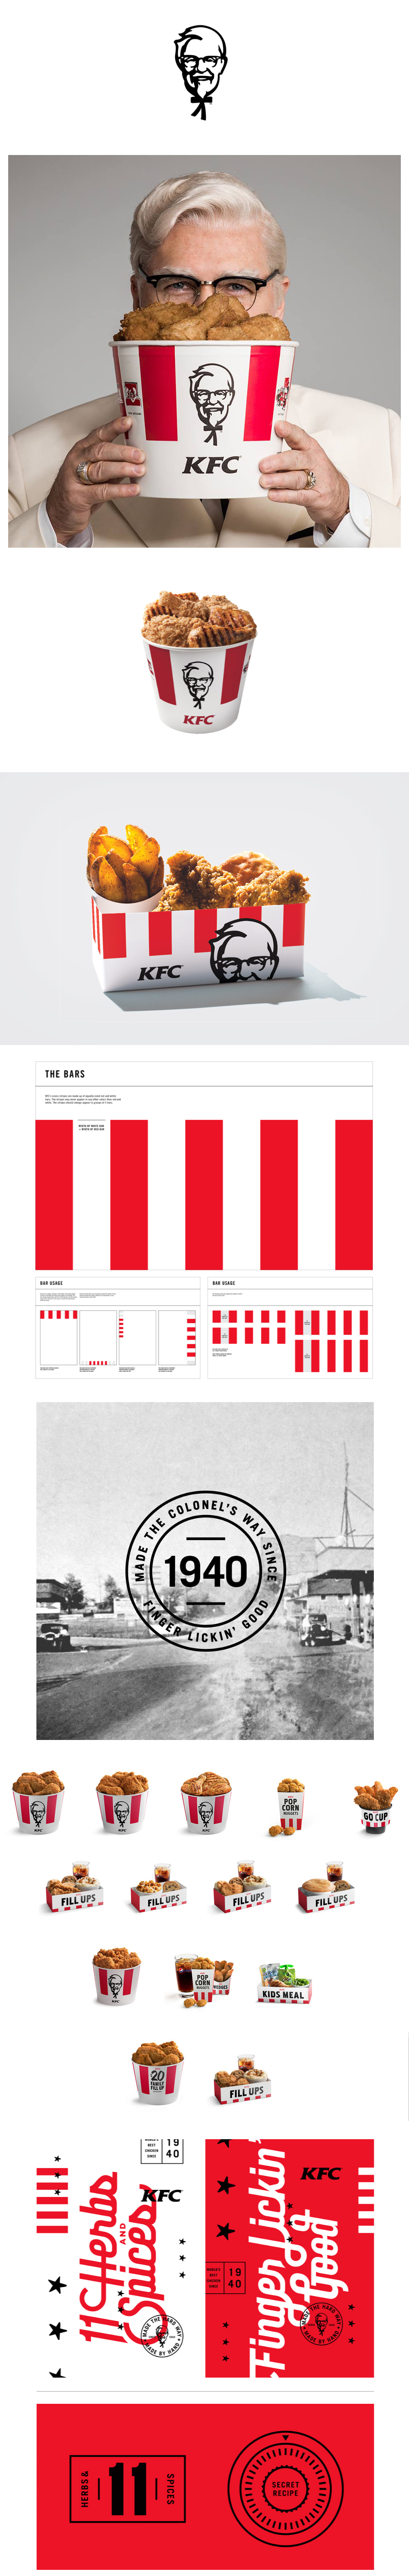 Pin by Allen SW Huang on Design   Pinterest   KFC and Packaging design